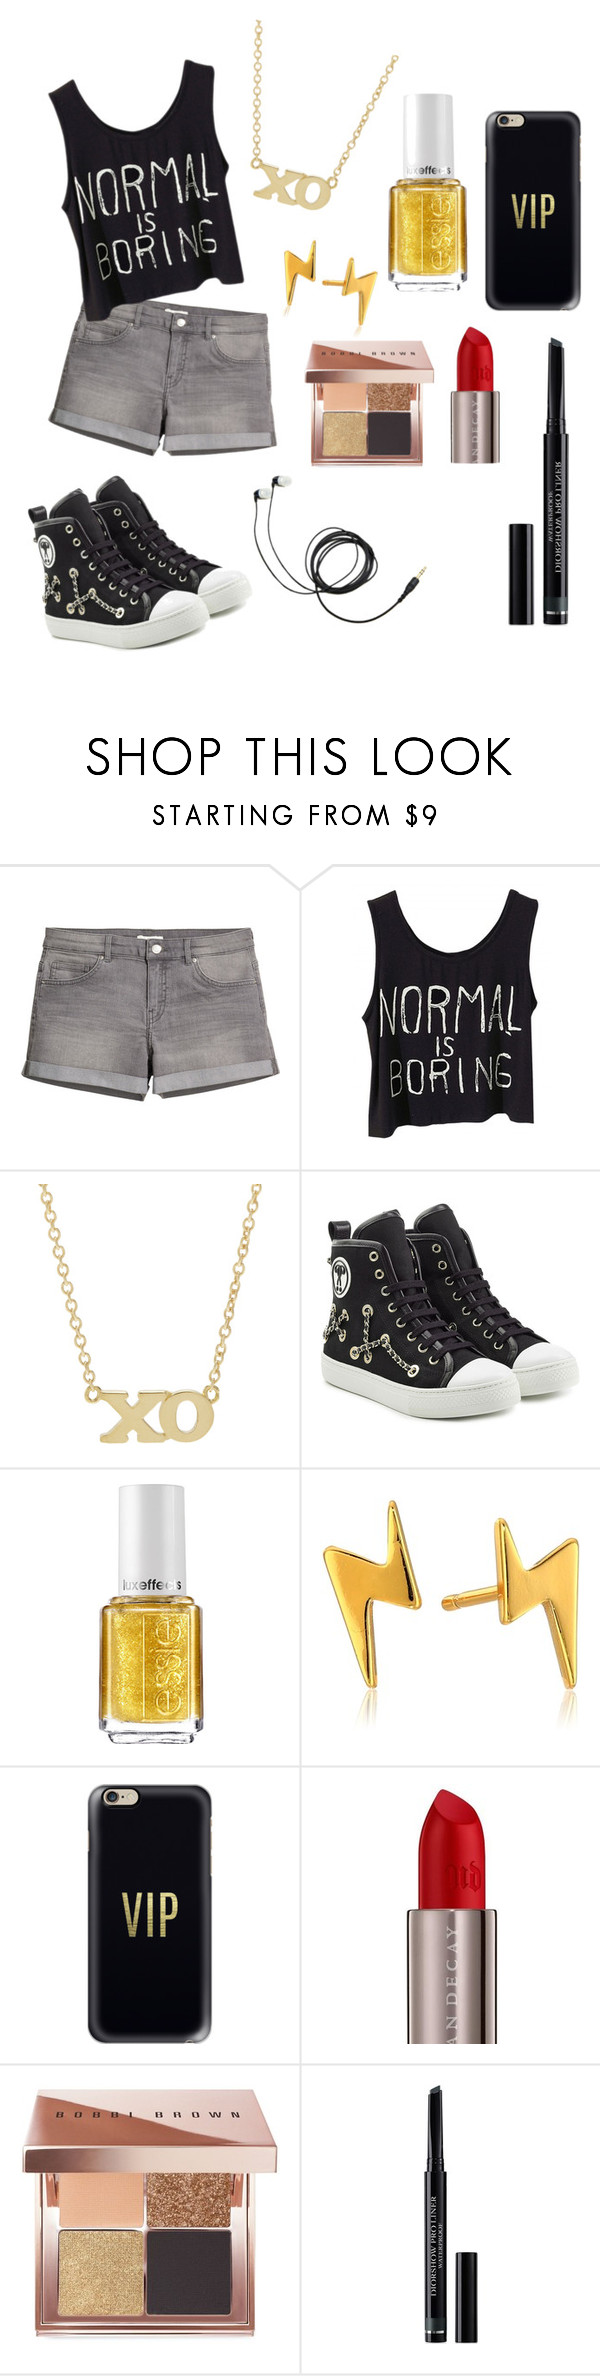 """street outfit"" by slatkica676 ❤ liked on Polyvore featuring Jennifer Meyer Jewelry, Moschino, Essie, Gorjana, Casetify, Urban Decay, Bobbi Brown Cosmetics and Christian Dior"